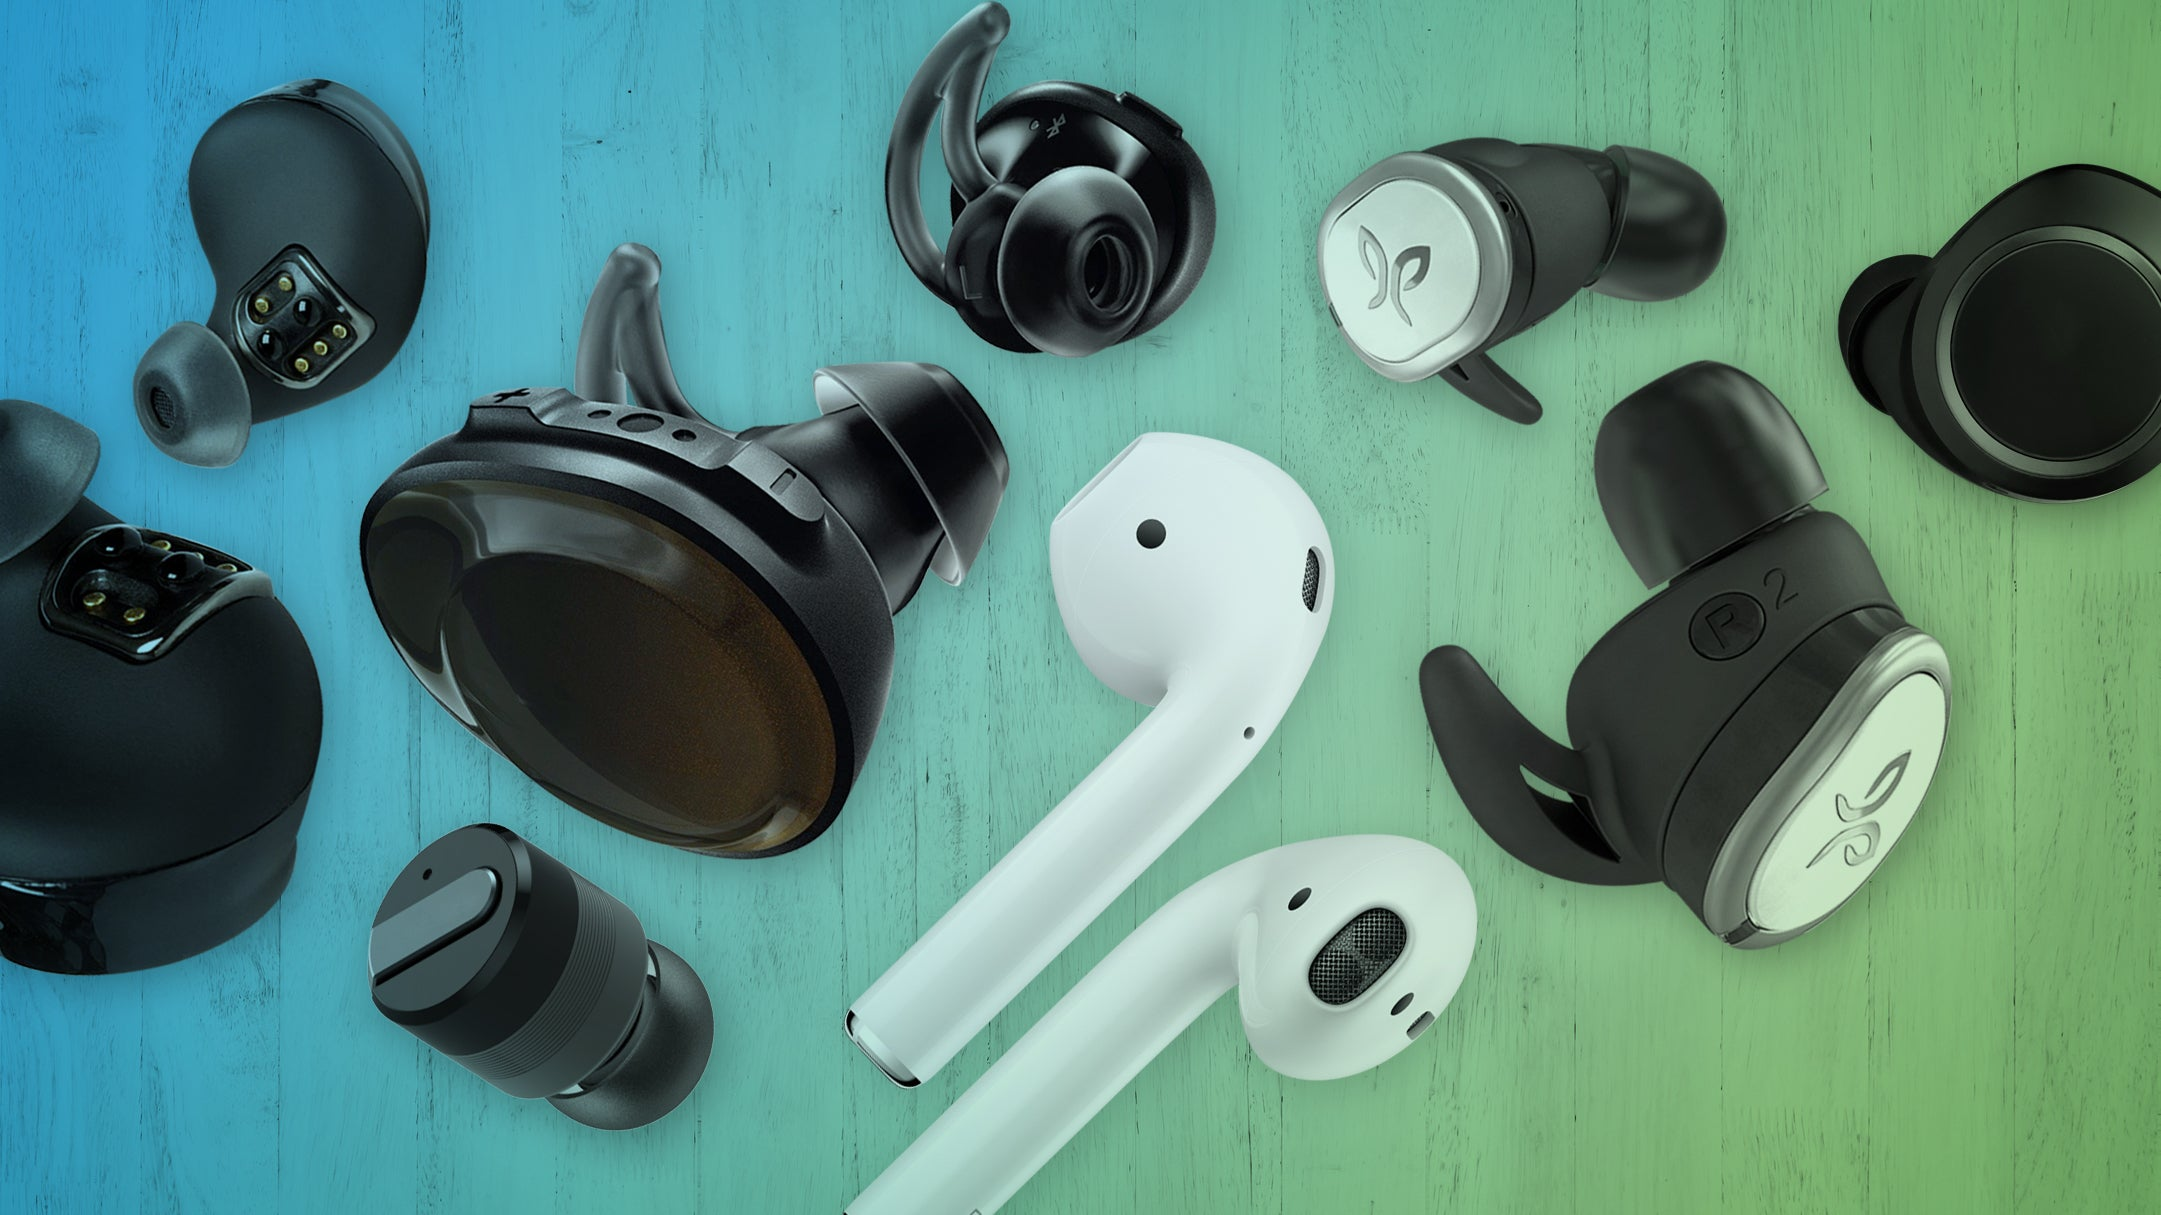 Best true wireless earbuds 2019: Top picks, expert reviews